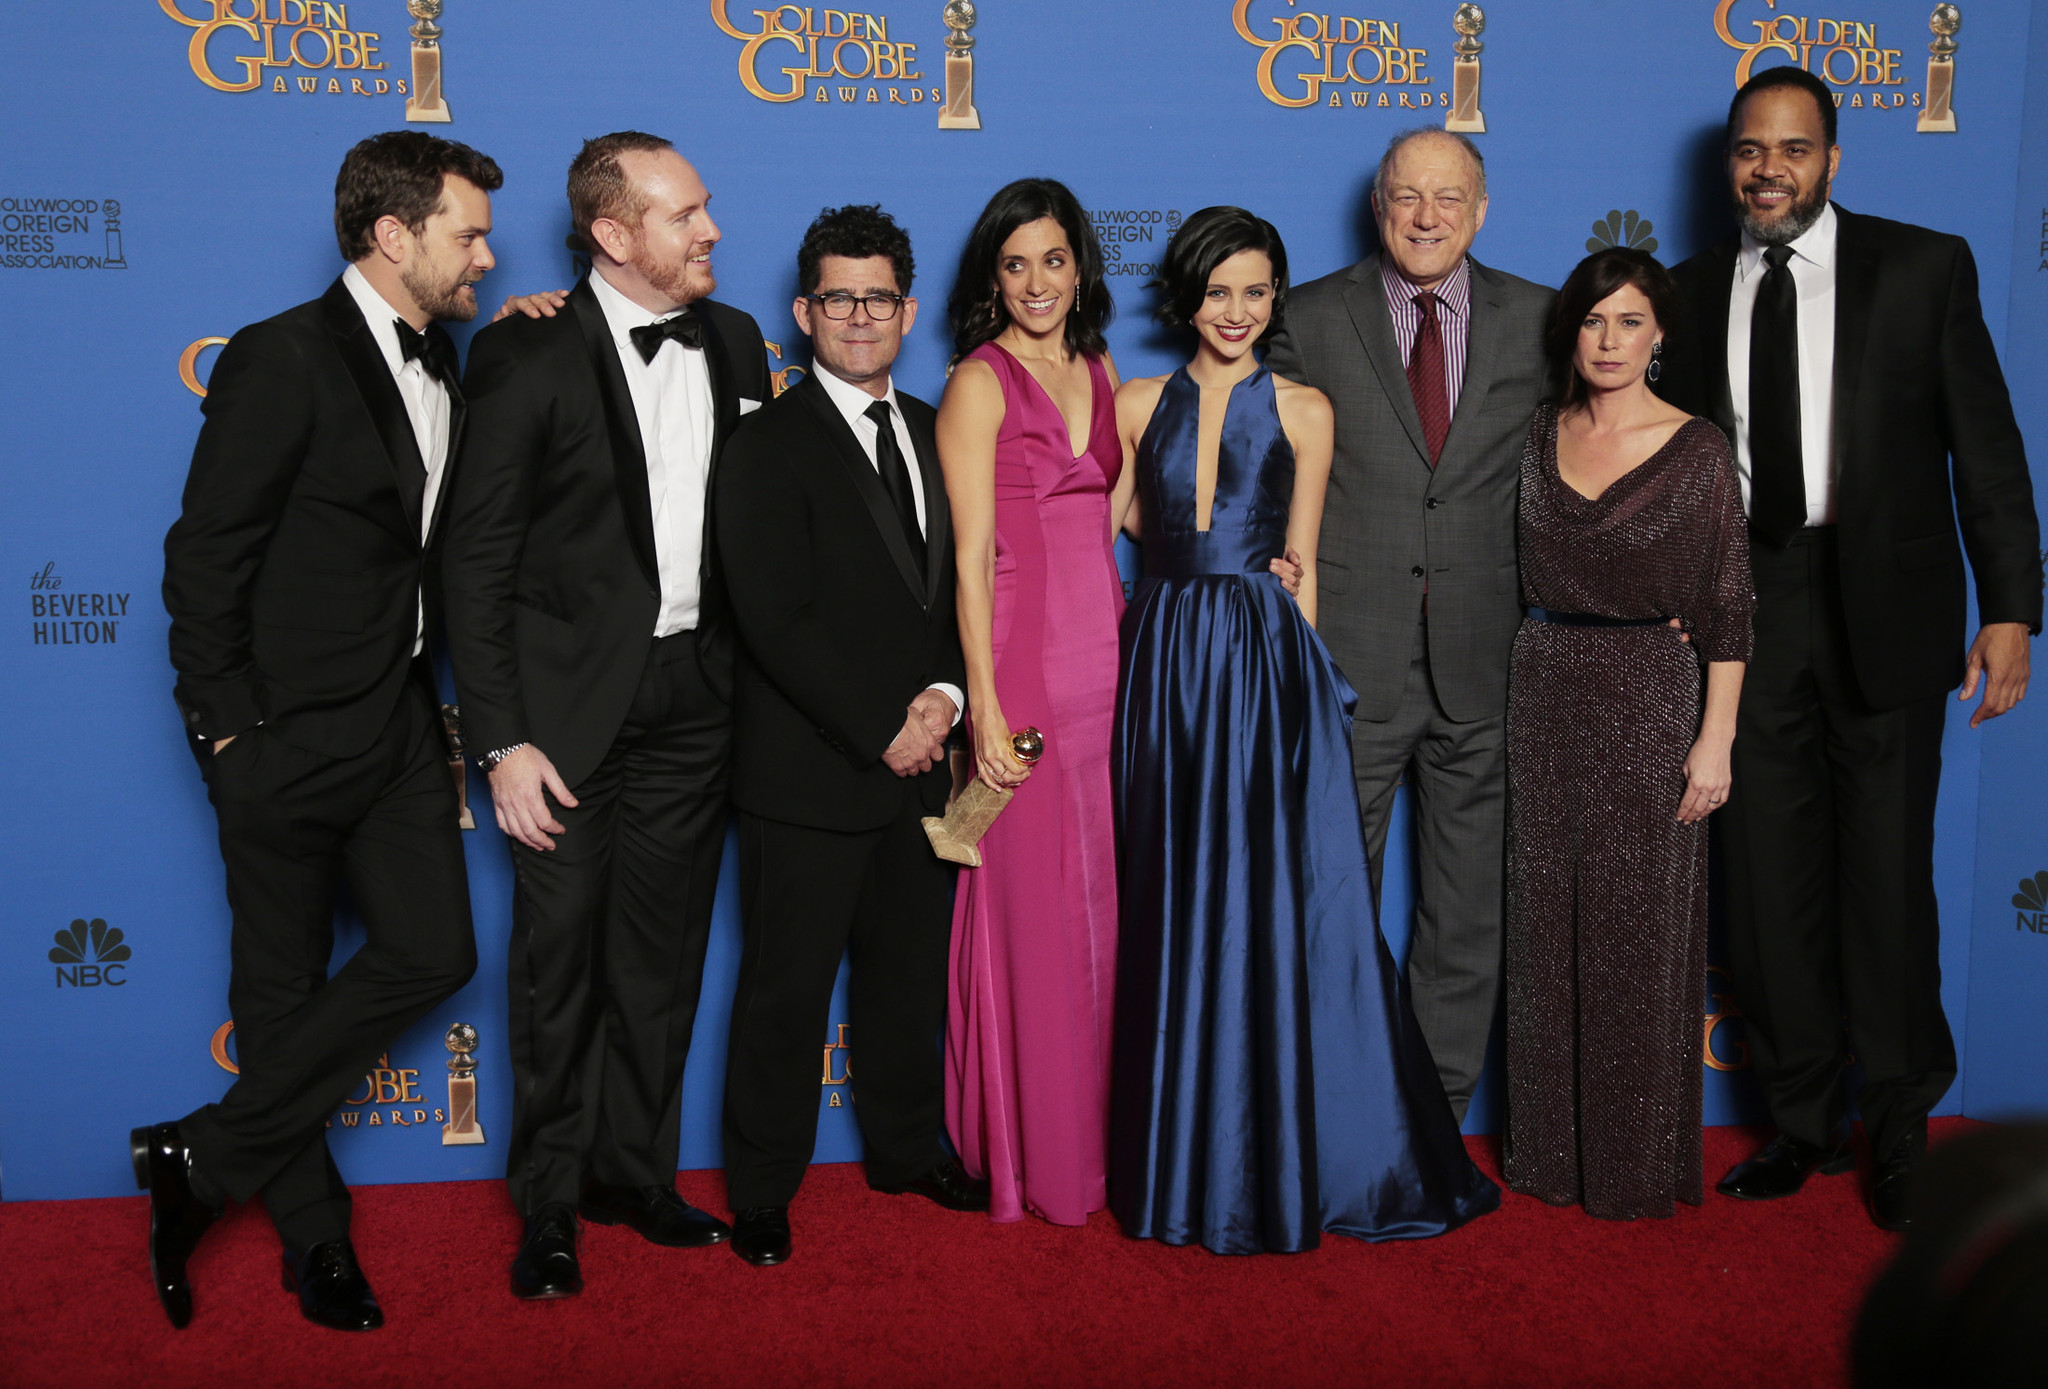 Golden Globes 2015 The Affair Wins For Tv Drama Series